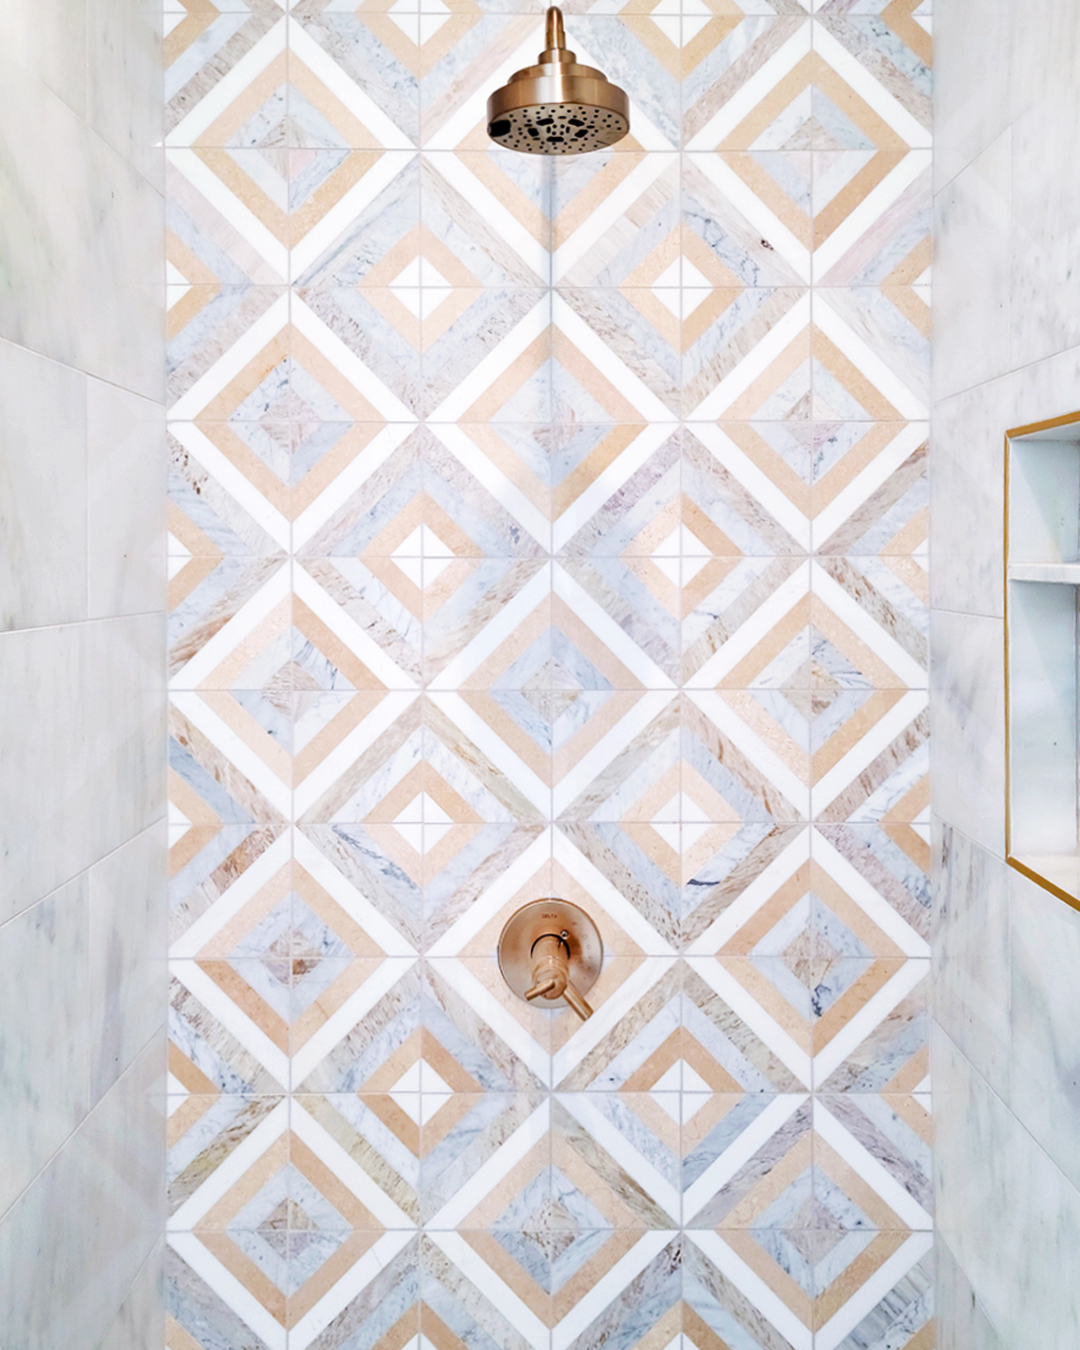 shower wall with brass fixtures and geometric tiles